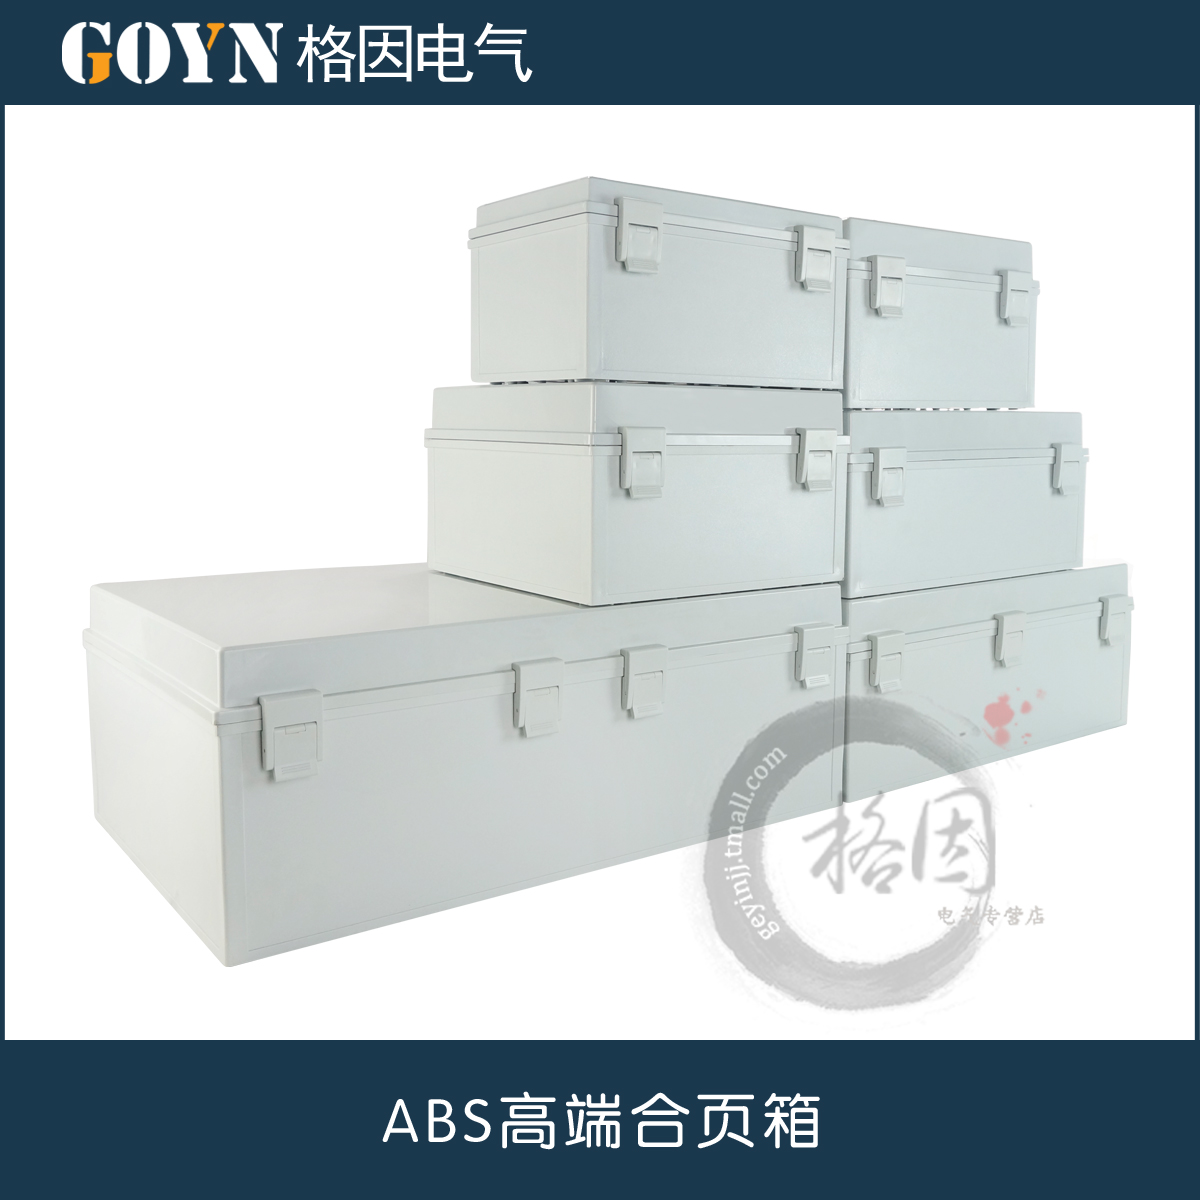 The seal box electrical box control box whose box distribution box 300*200*160 waterproof plastic hinge connection box